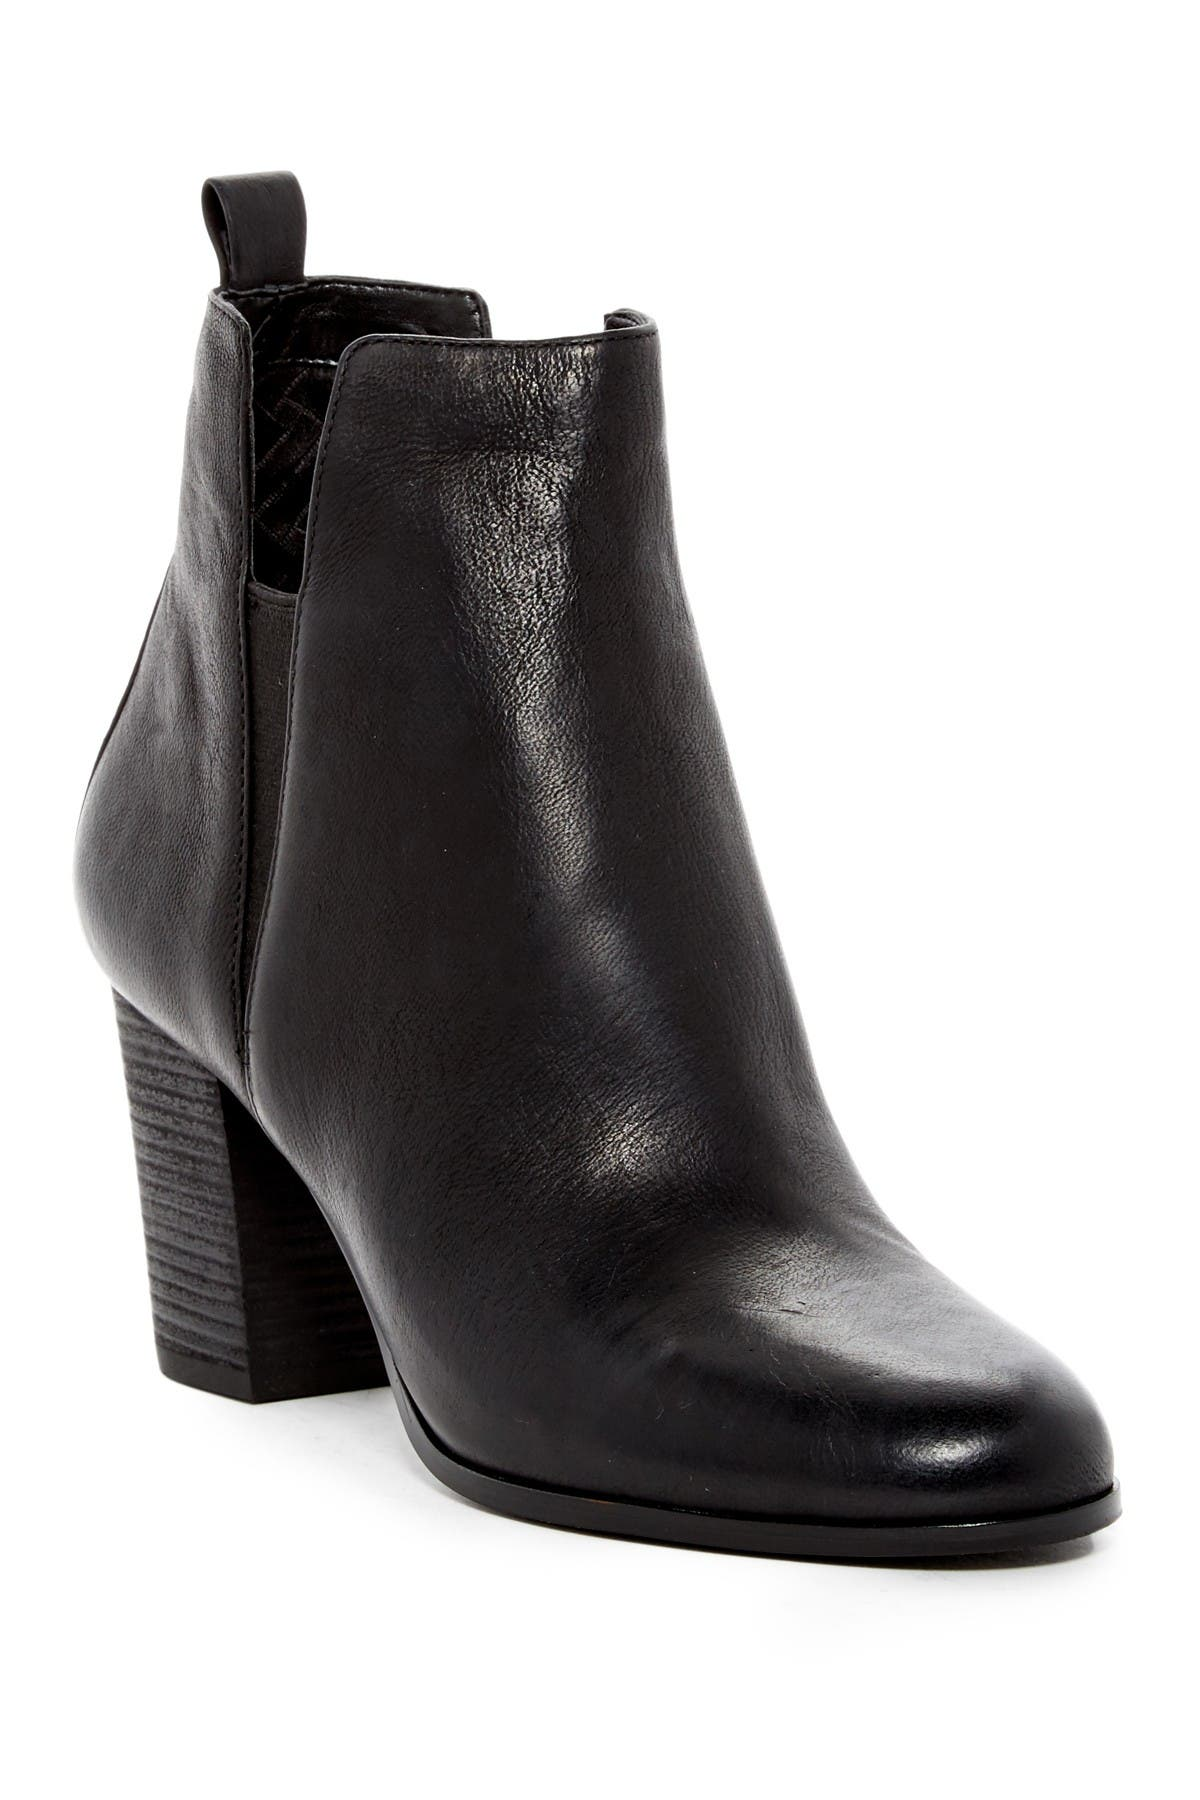 Image of Cole Haan Cassidy Bootie